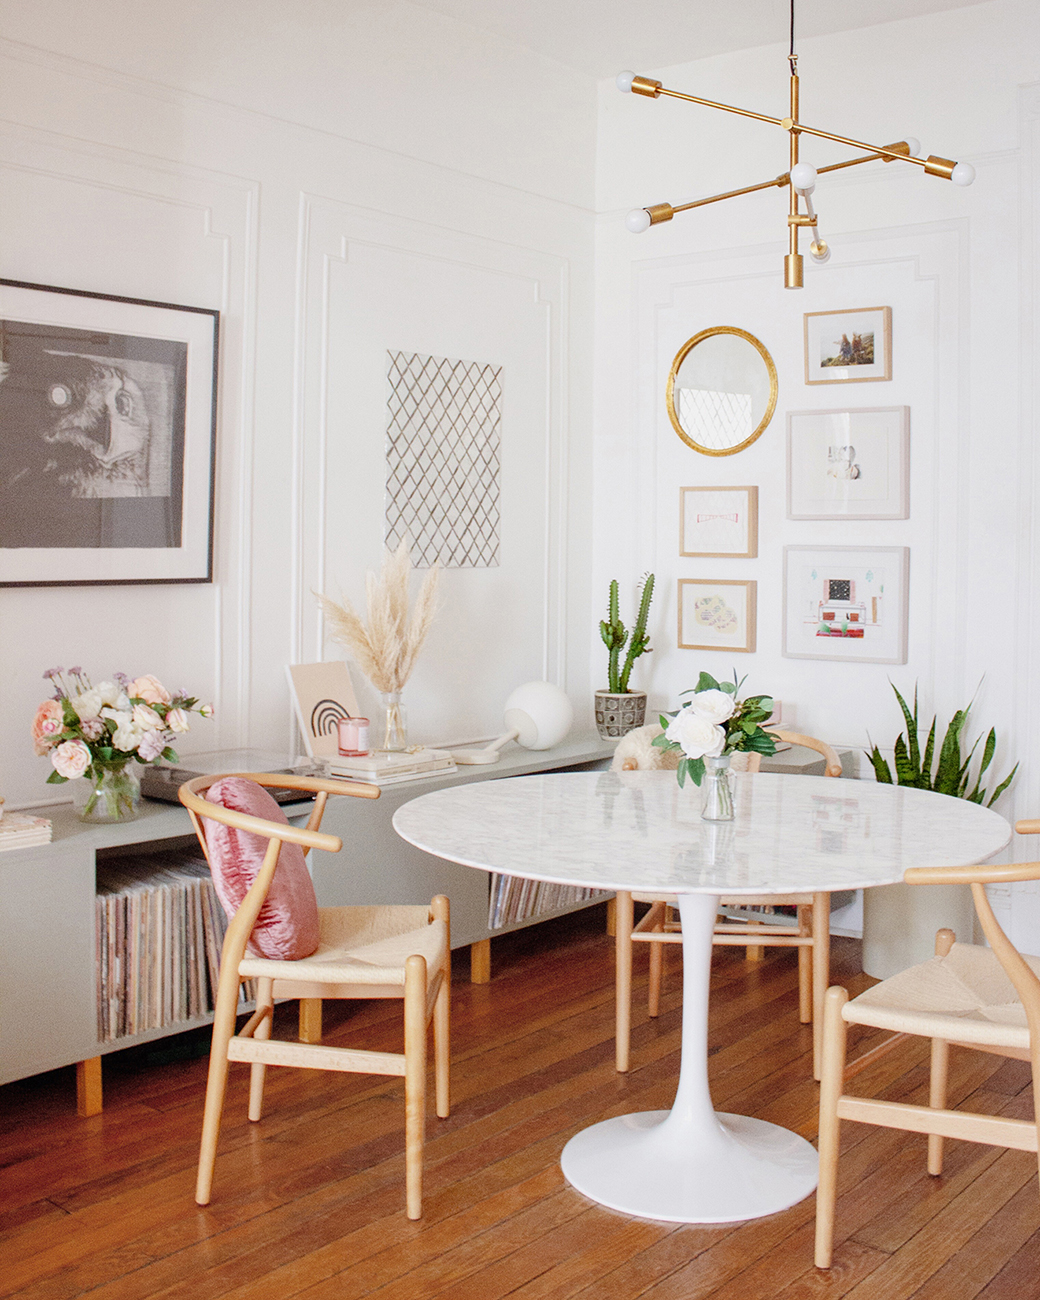 Decorate a modern dining room